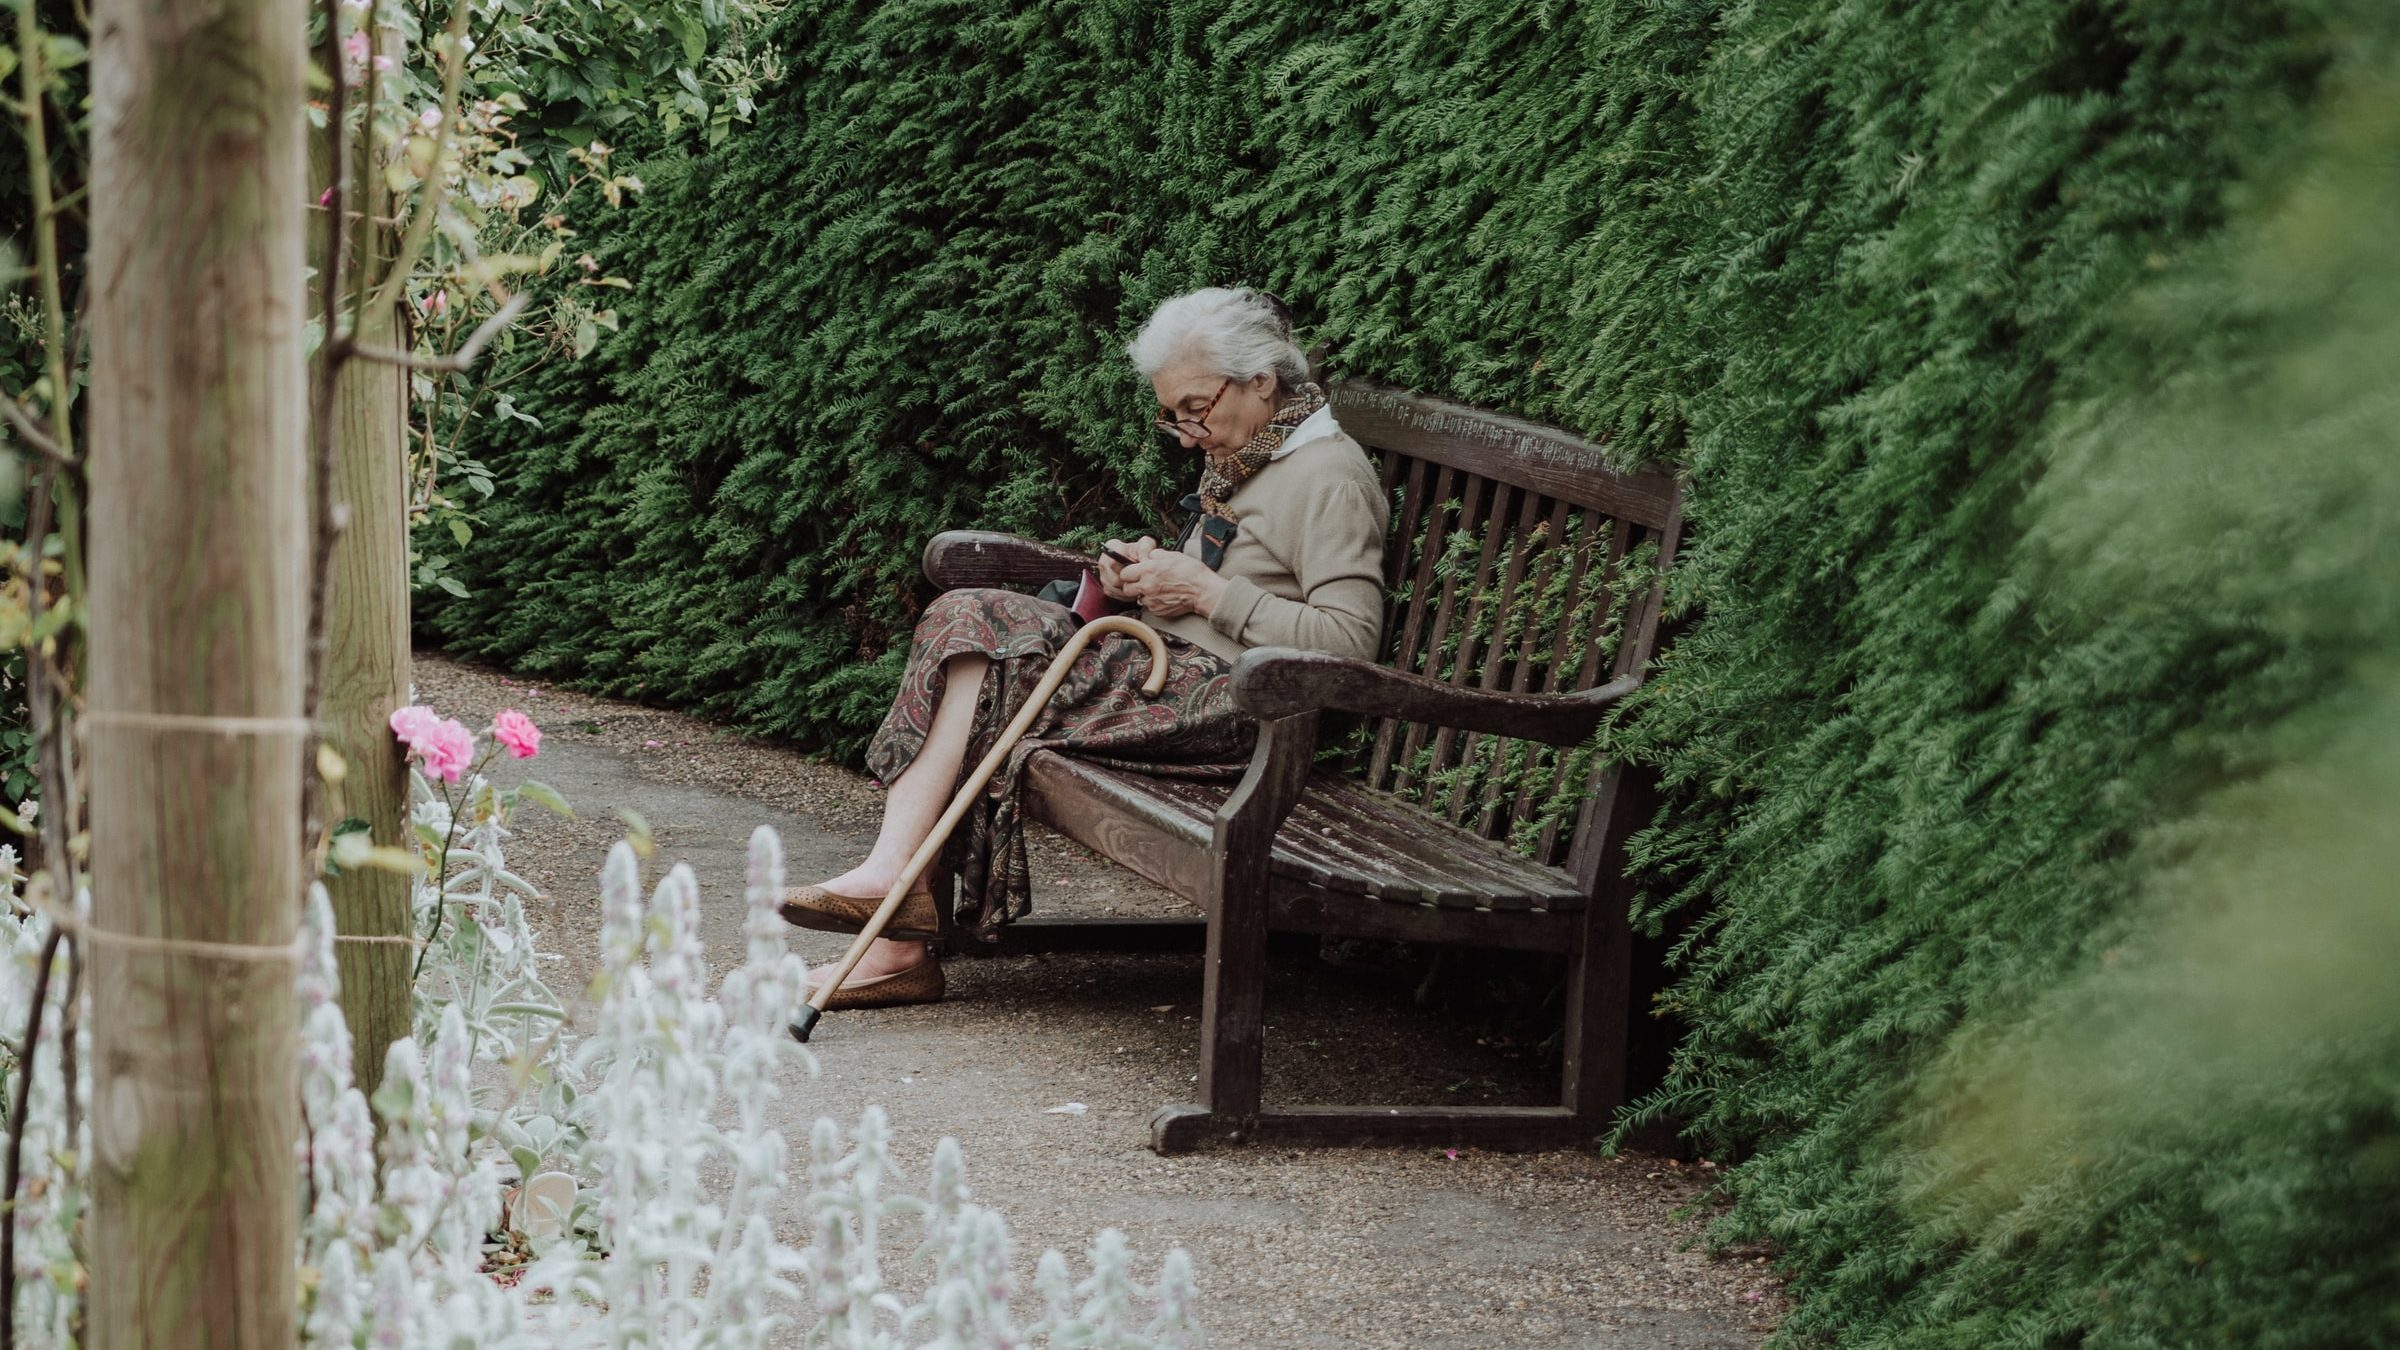 Old lady sitting on a bench with her walking stick